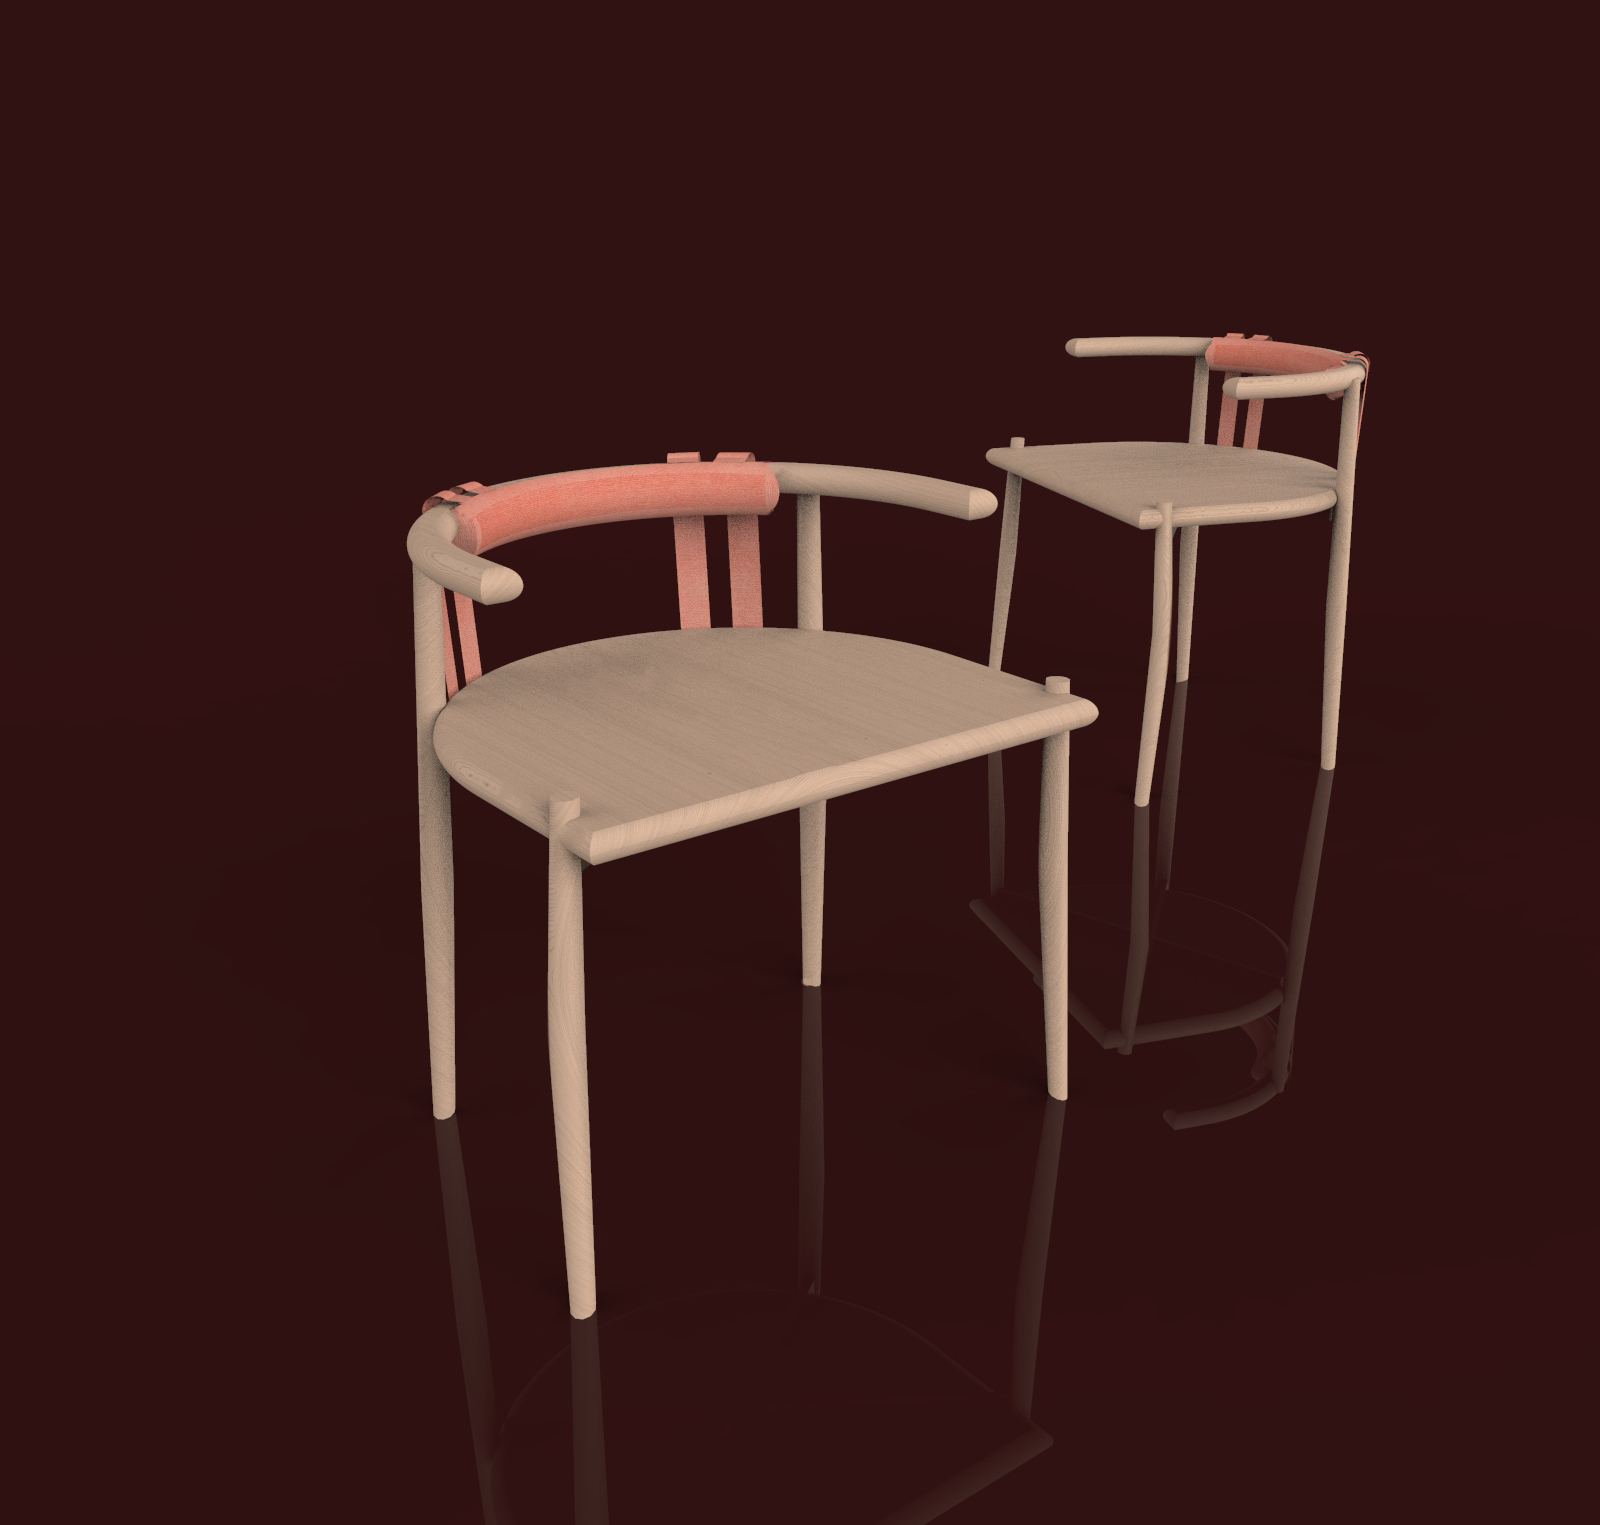 Crate chair rendering 2.17694.jpg